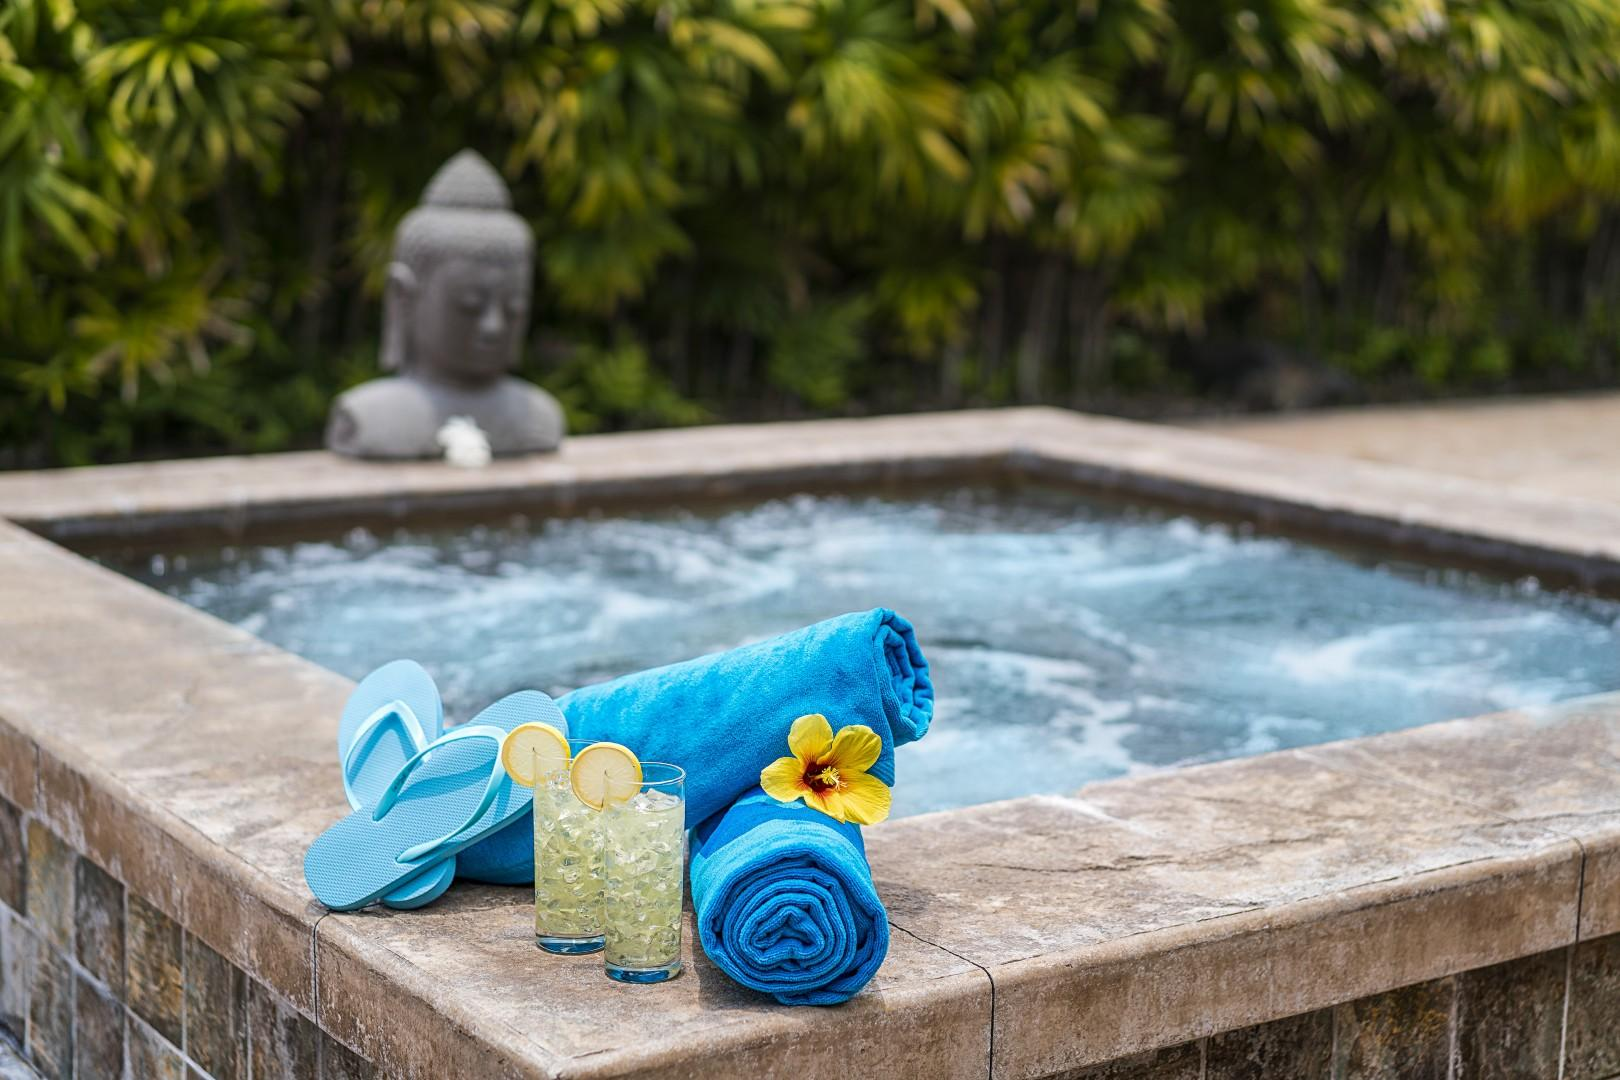 Relax and let your troubles melt away in the spa!